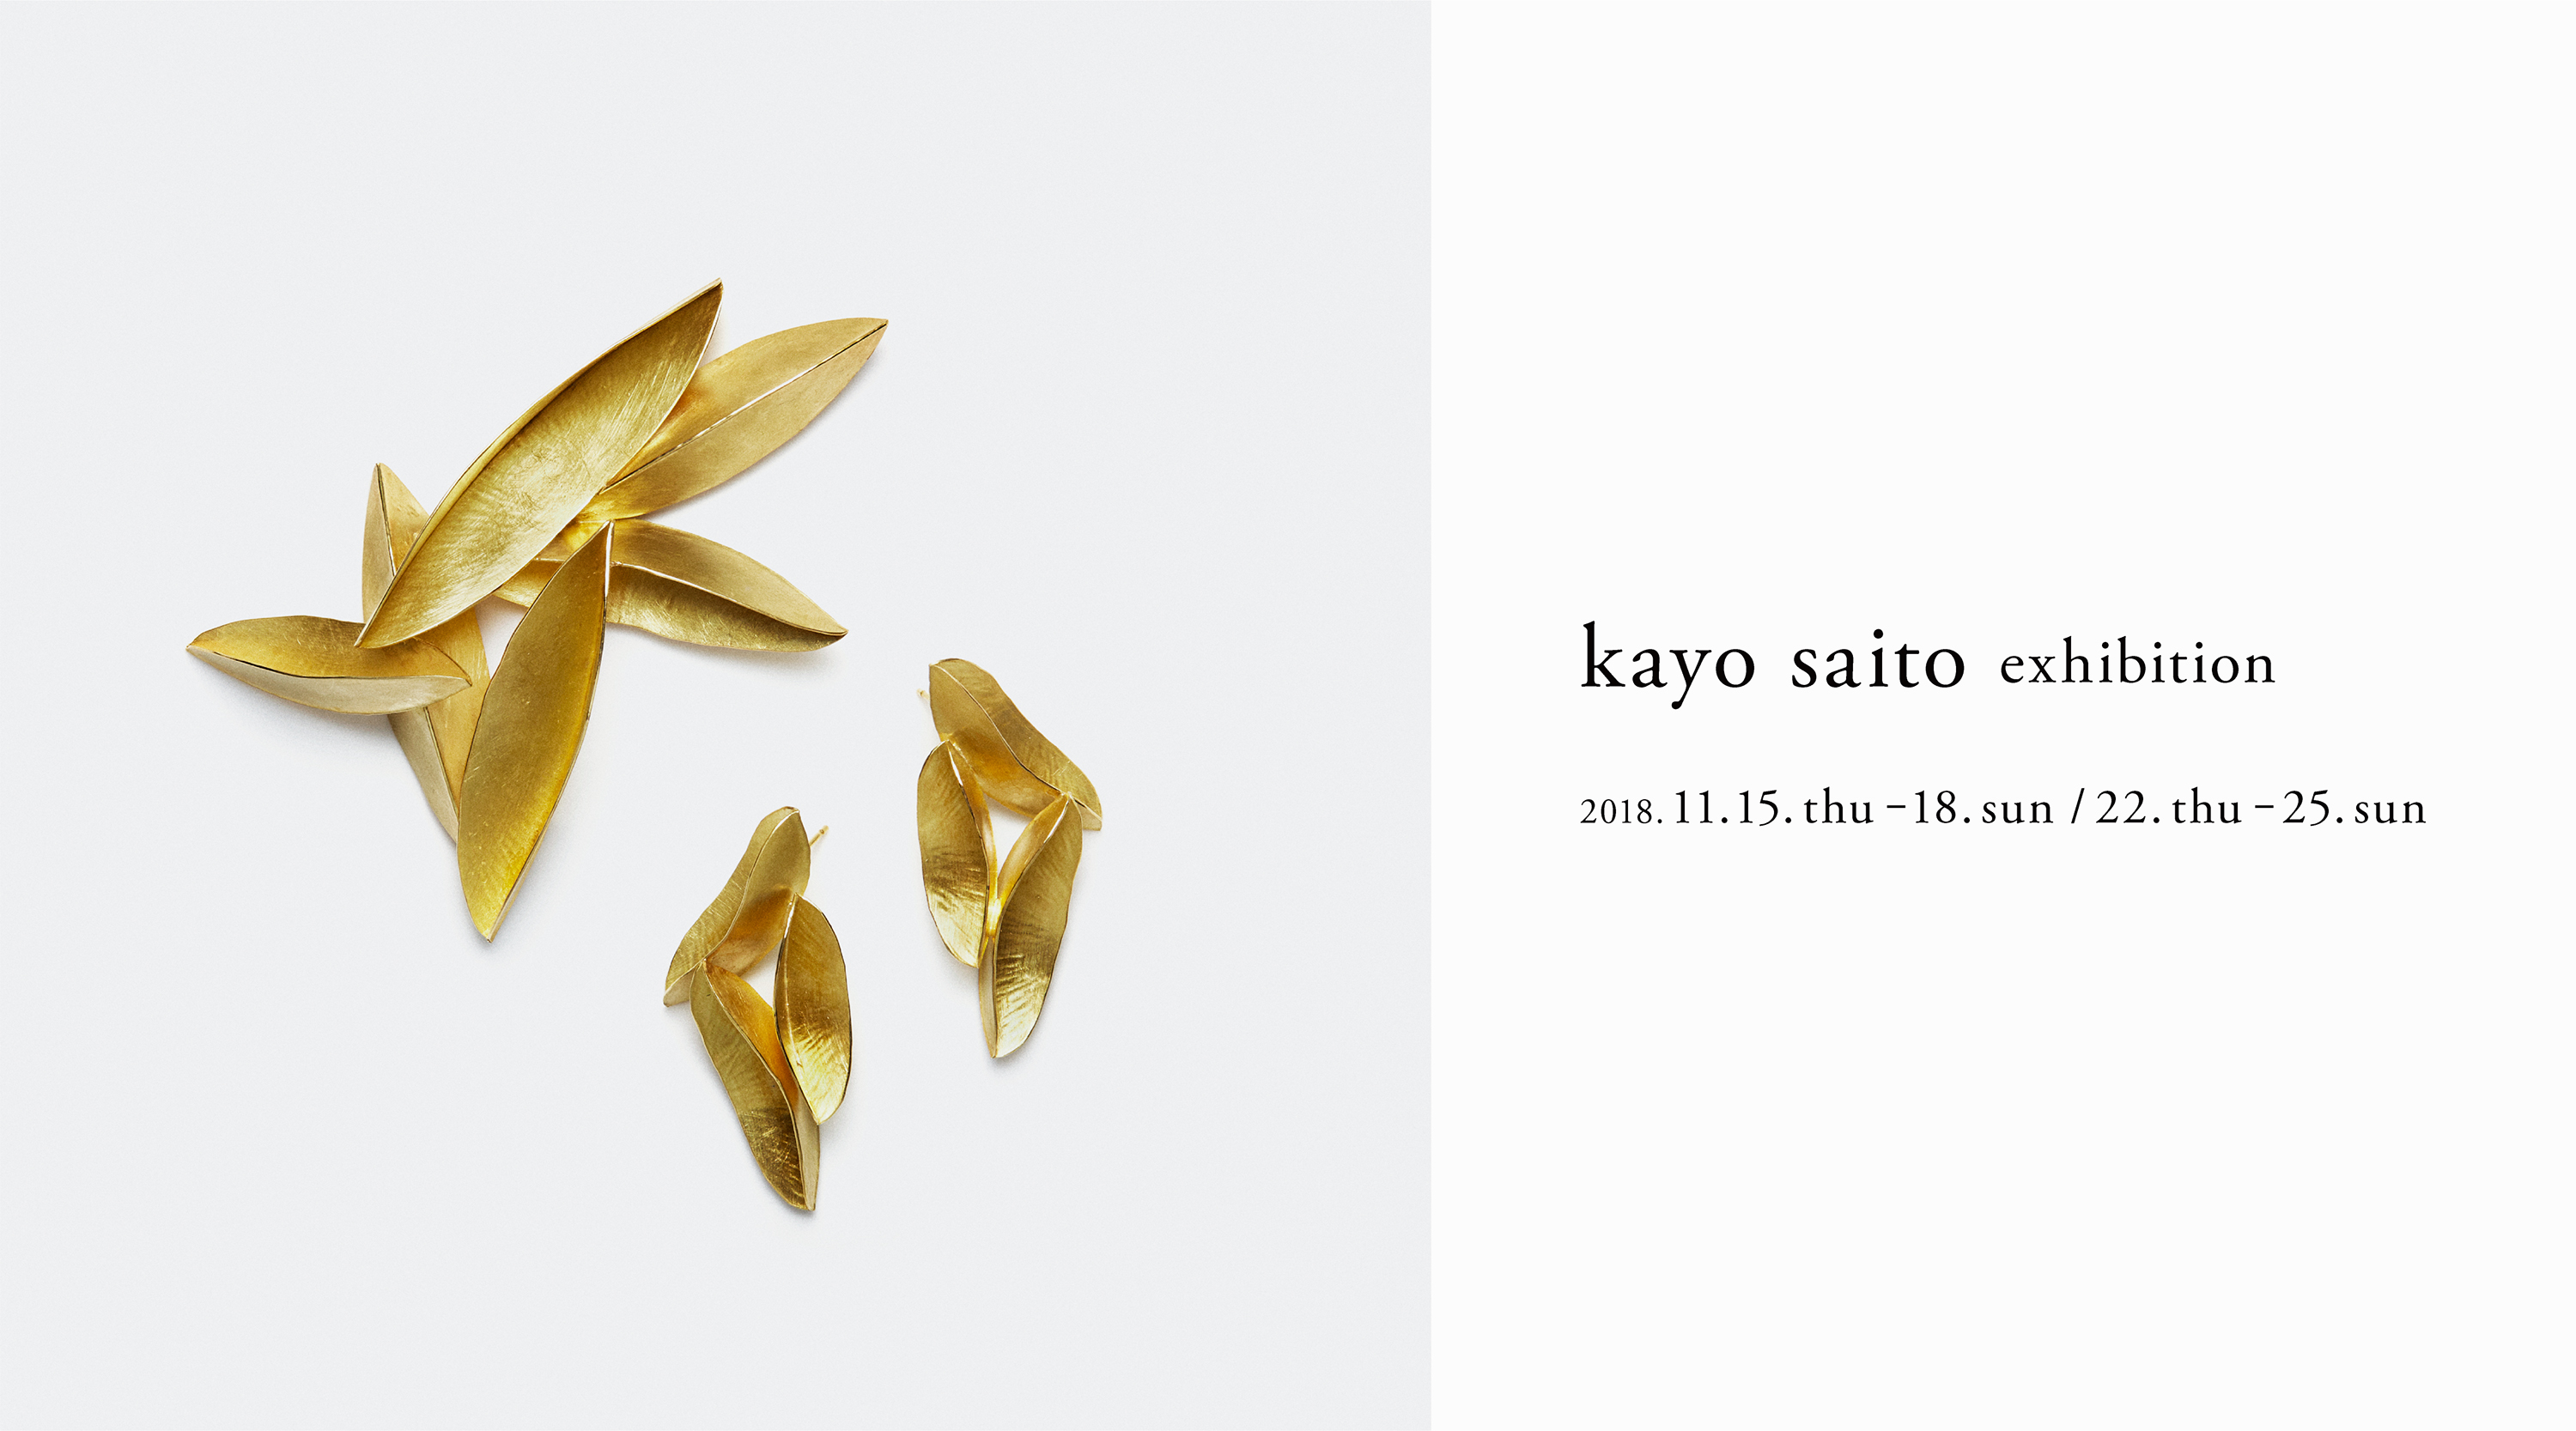 kayo saito exhibition